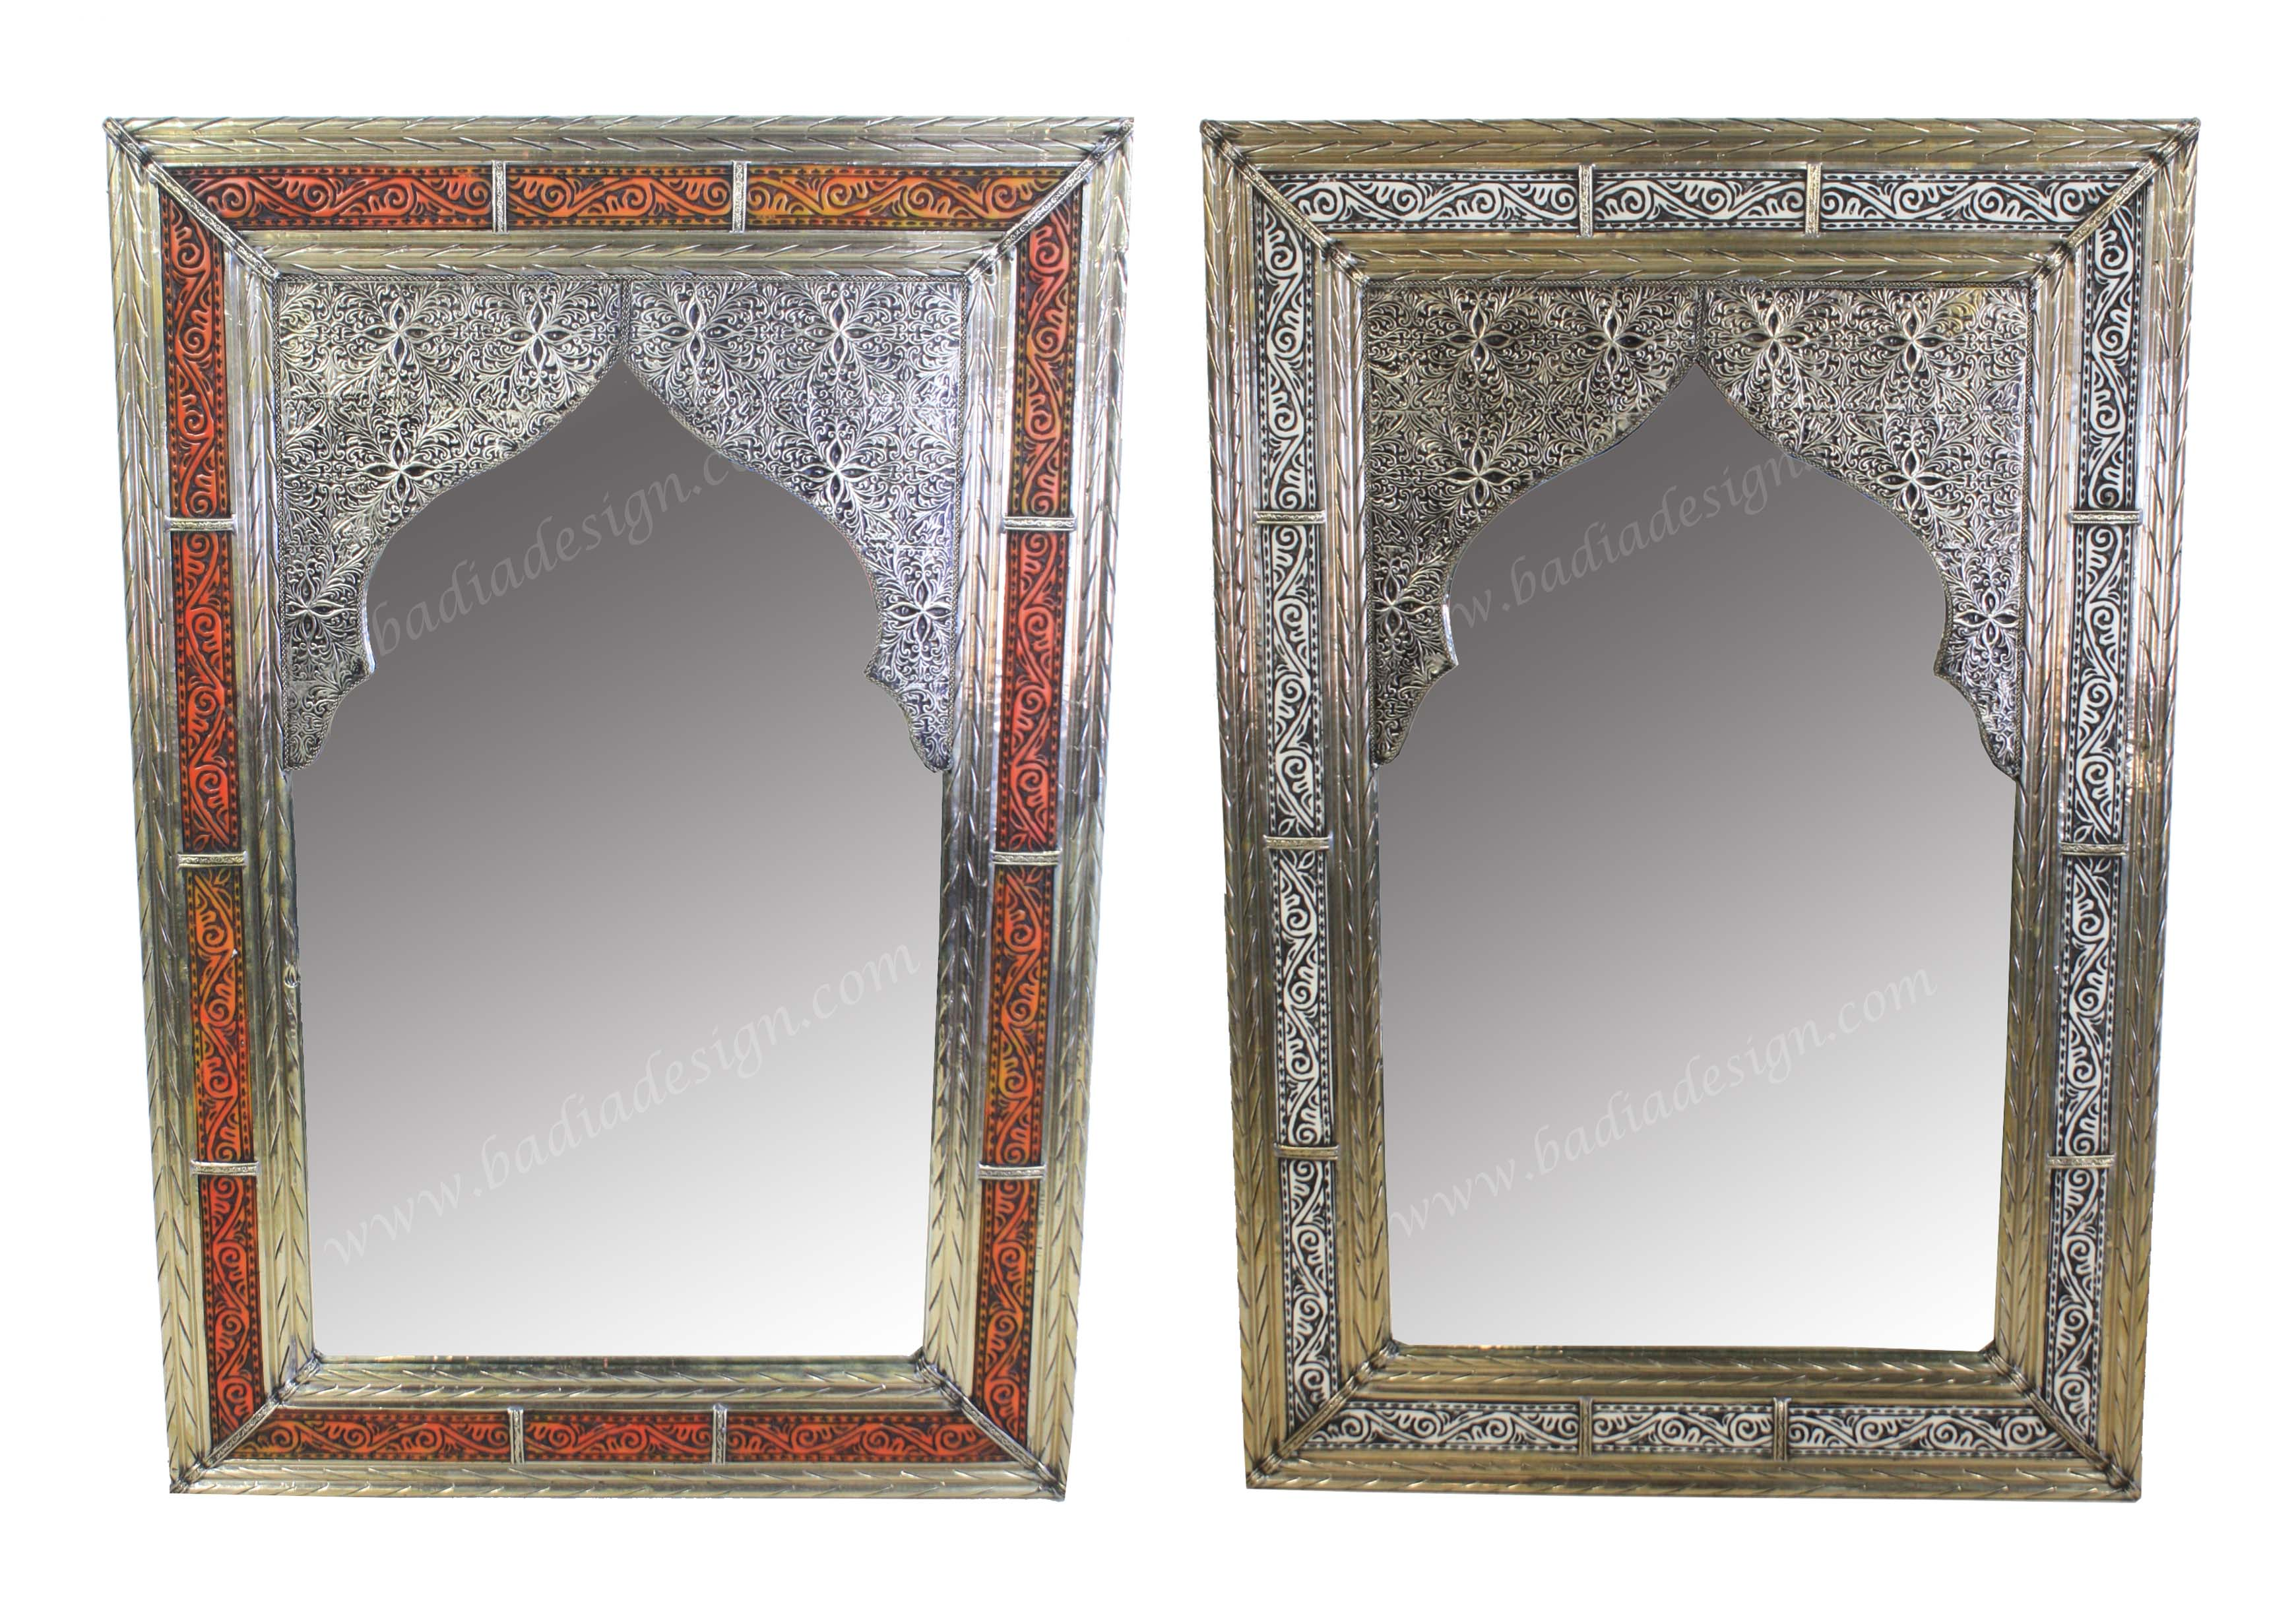 moroccan-camel-bone-mirror-los-angeles-m-mb070.jpg